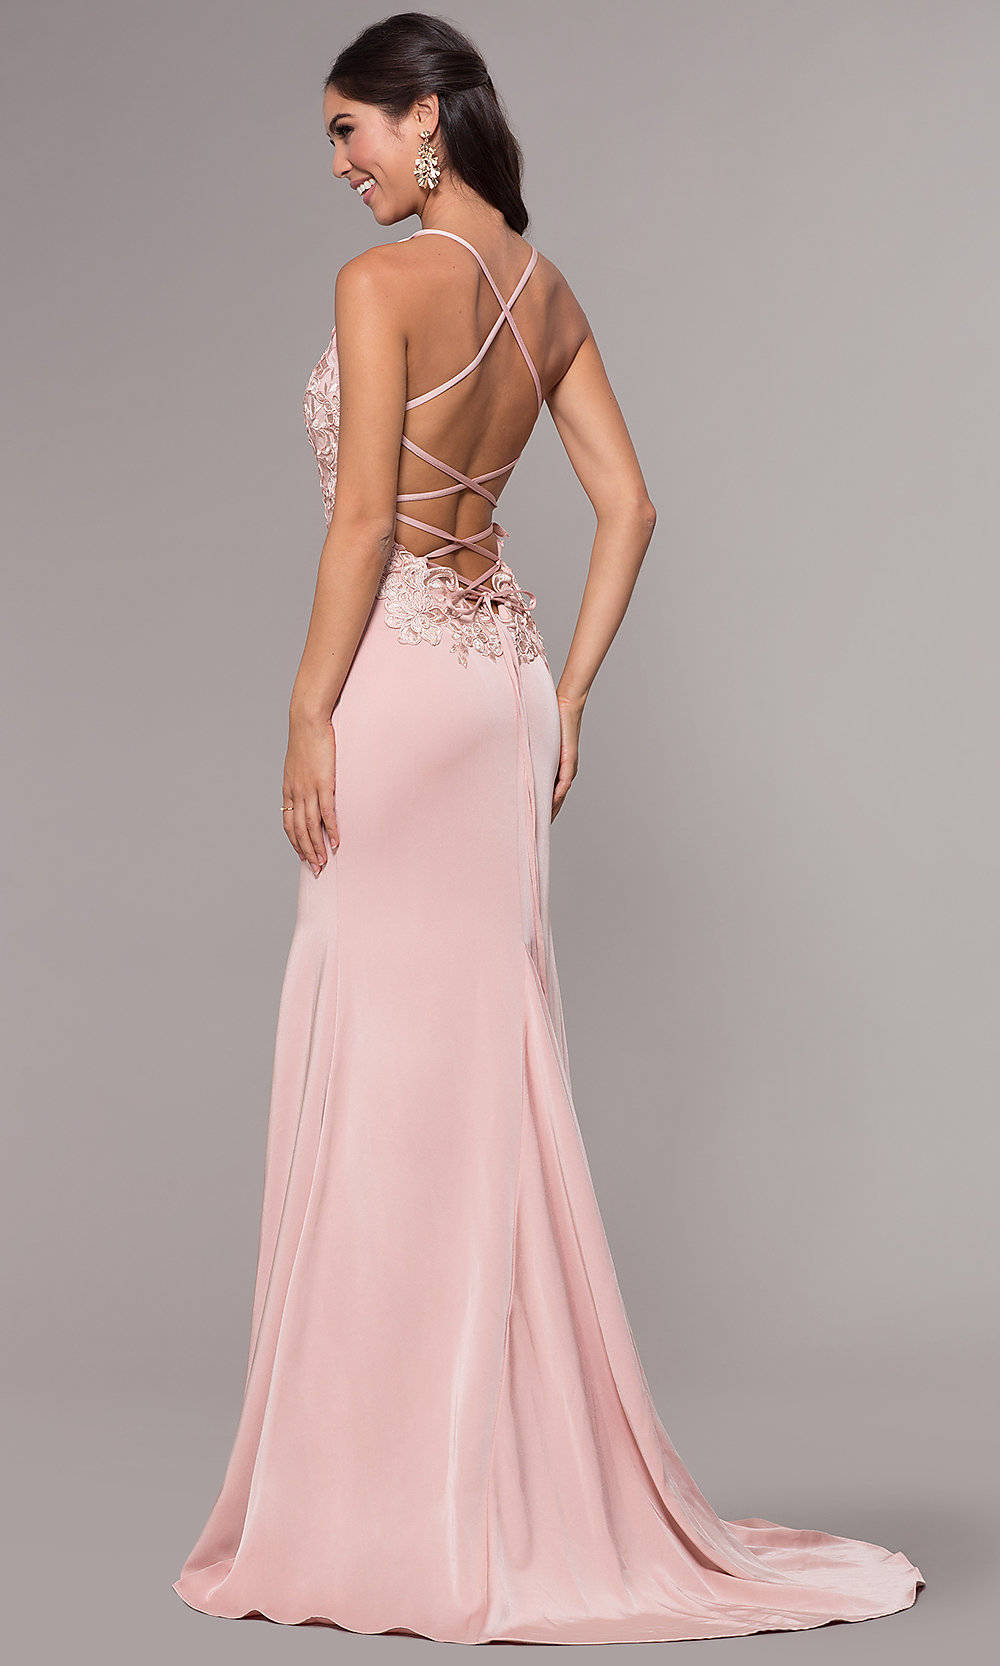 8f84a51876 Image of embroidered-bodice long v-neck prom dress. Style: ZG-. Tap to  expand